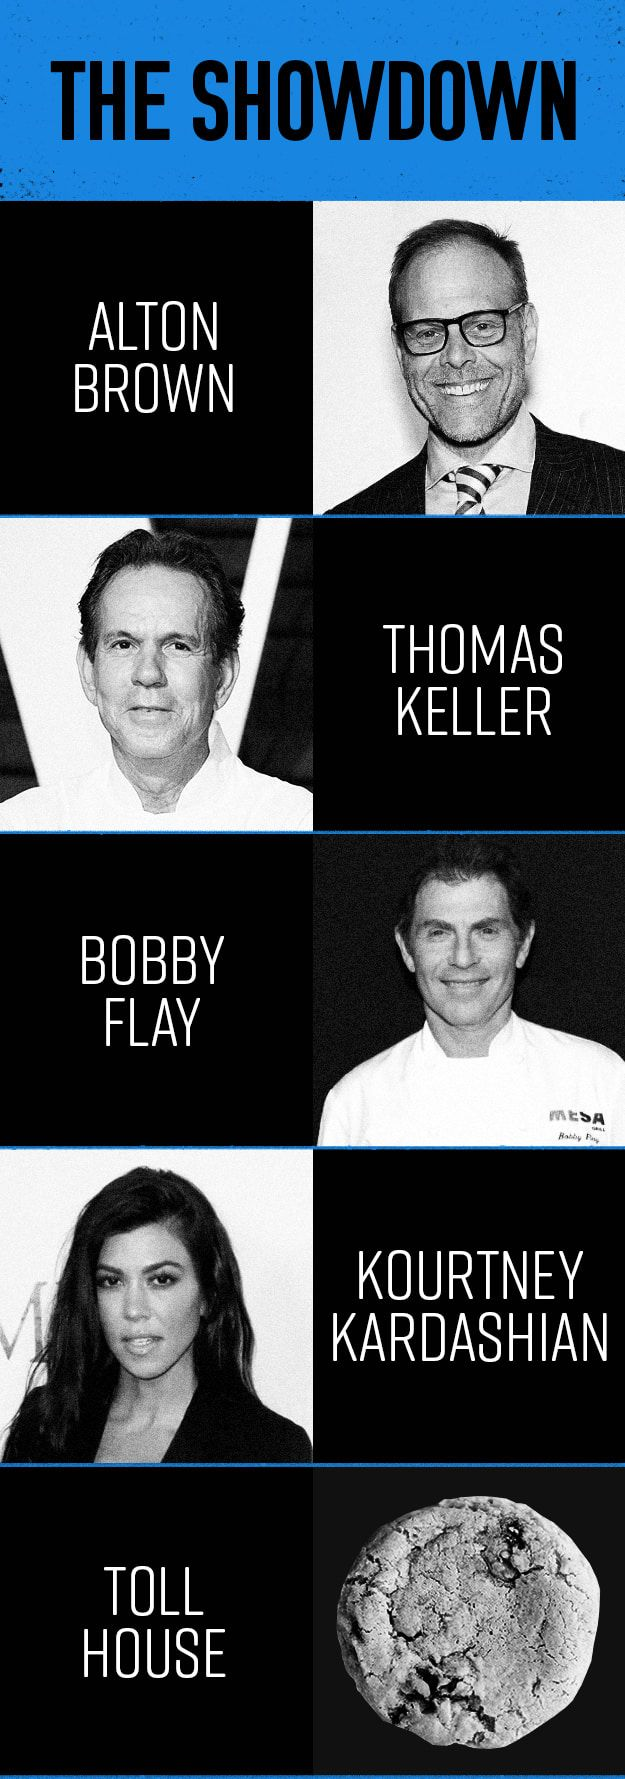 This was my lineup:1. Alton Brown: Because he's all about technique — and a good chocolate chip cookie comes down to one thing: proper technique.2. Thomas Keller: Because he's arguably the most acclaimed chef in America. If HE can't make a perfect chocolate chip cookie, who can?3. Bobby Flay: Because he seems to be good at beating other people's recipes, so I figured his recipe should be unbeatable. (Right?)4. Kourtney Kardashian: Because I wanted to include someone who wasn't a professional…